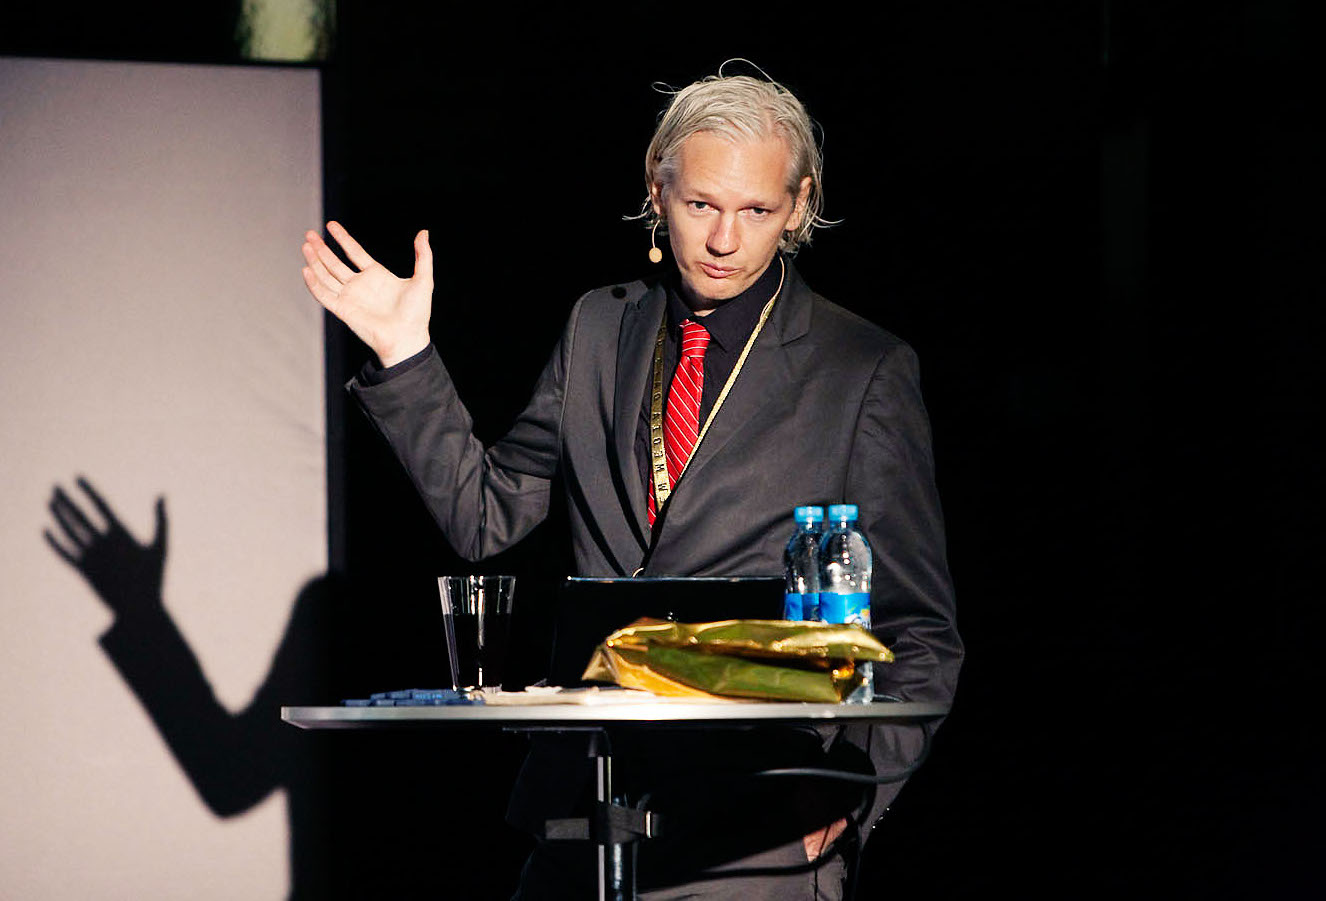 JULIAN ASSANGE - WikiLeaks 'editor-in-chief': from geek to freedom fighter! Julian_Assange_20091117_Copenhagen_2